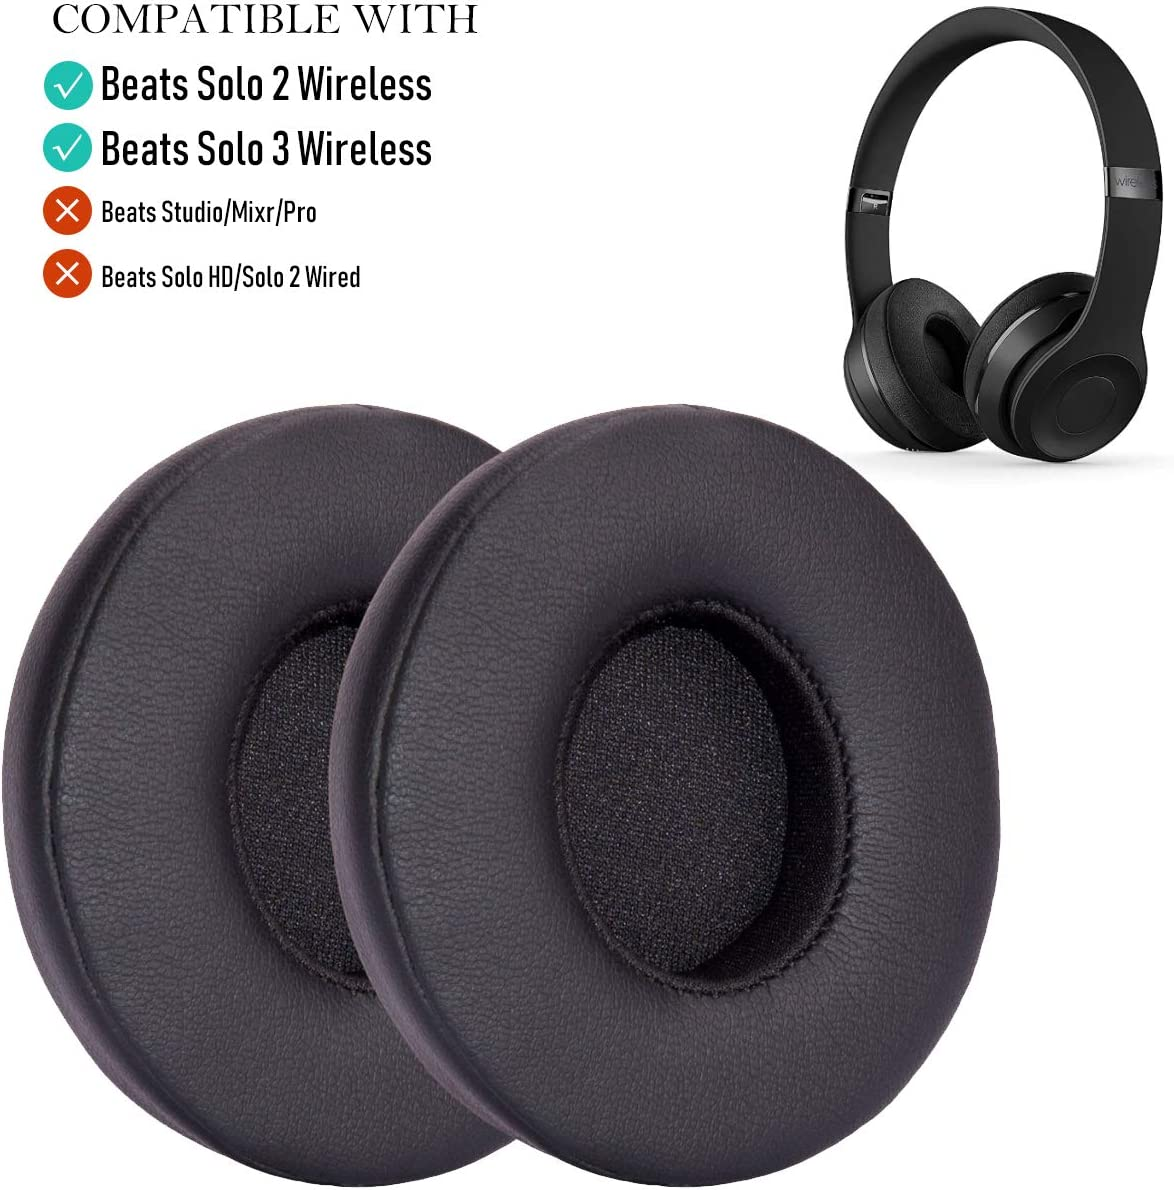 Amazon Com Oriolus Earpad Replacement For Beats Solo 3 2 Wireless On Ear Headphone Memory Foam Ear Cushion Cover Black Home Audio Theater